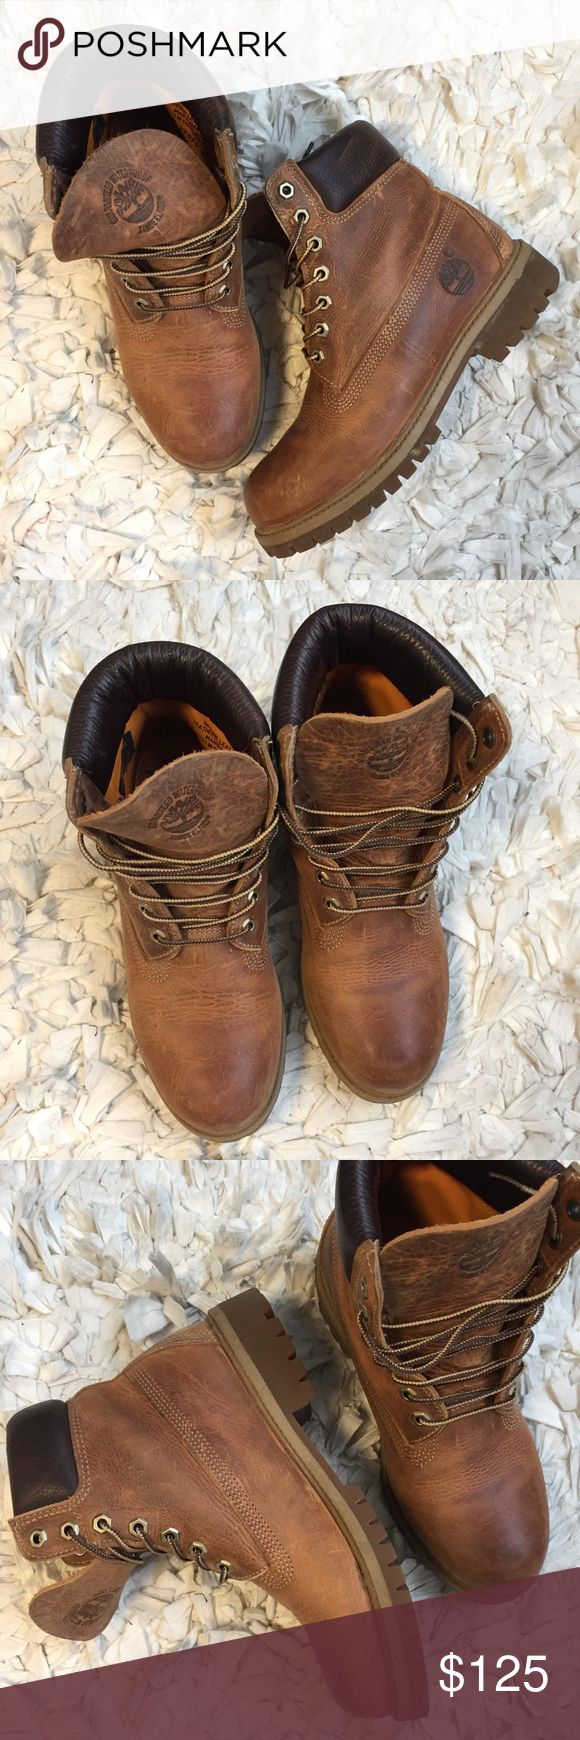 Timberland Earthkeeper Boots Rugged brown/tan Timberland boots. Worn a handful of times. Timberland Shoes Boots